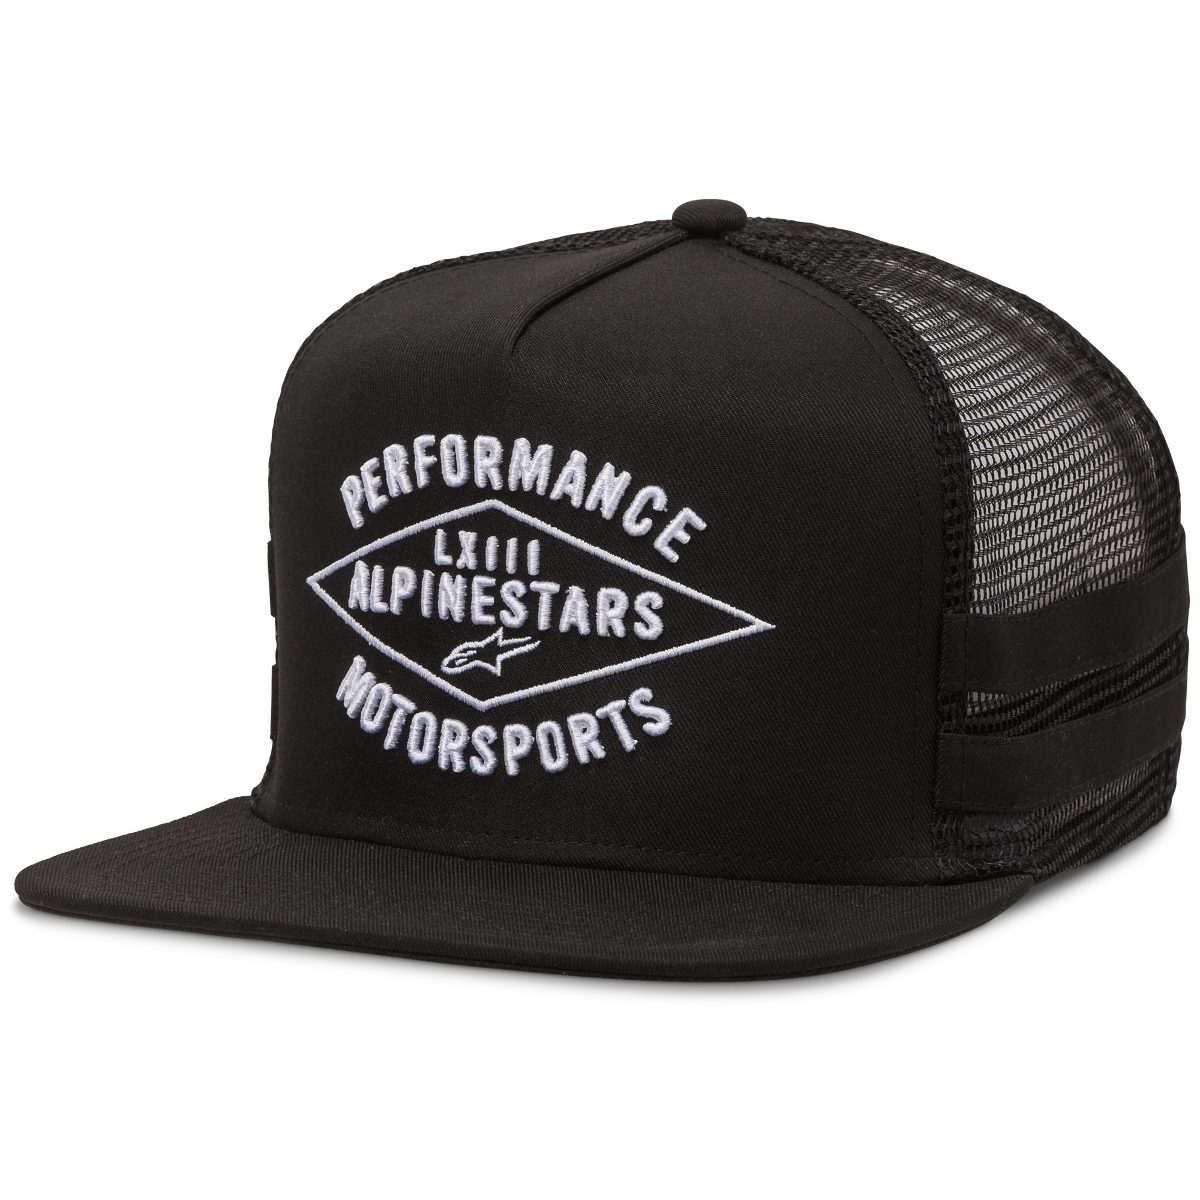 Viseras Planas - Alpinestars Gorra Expedition